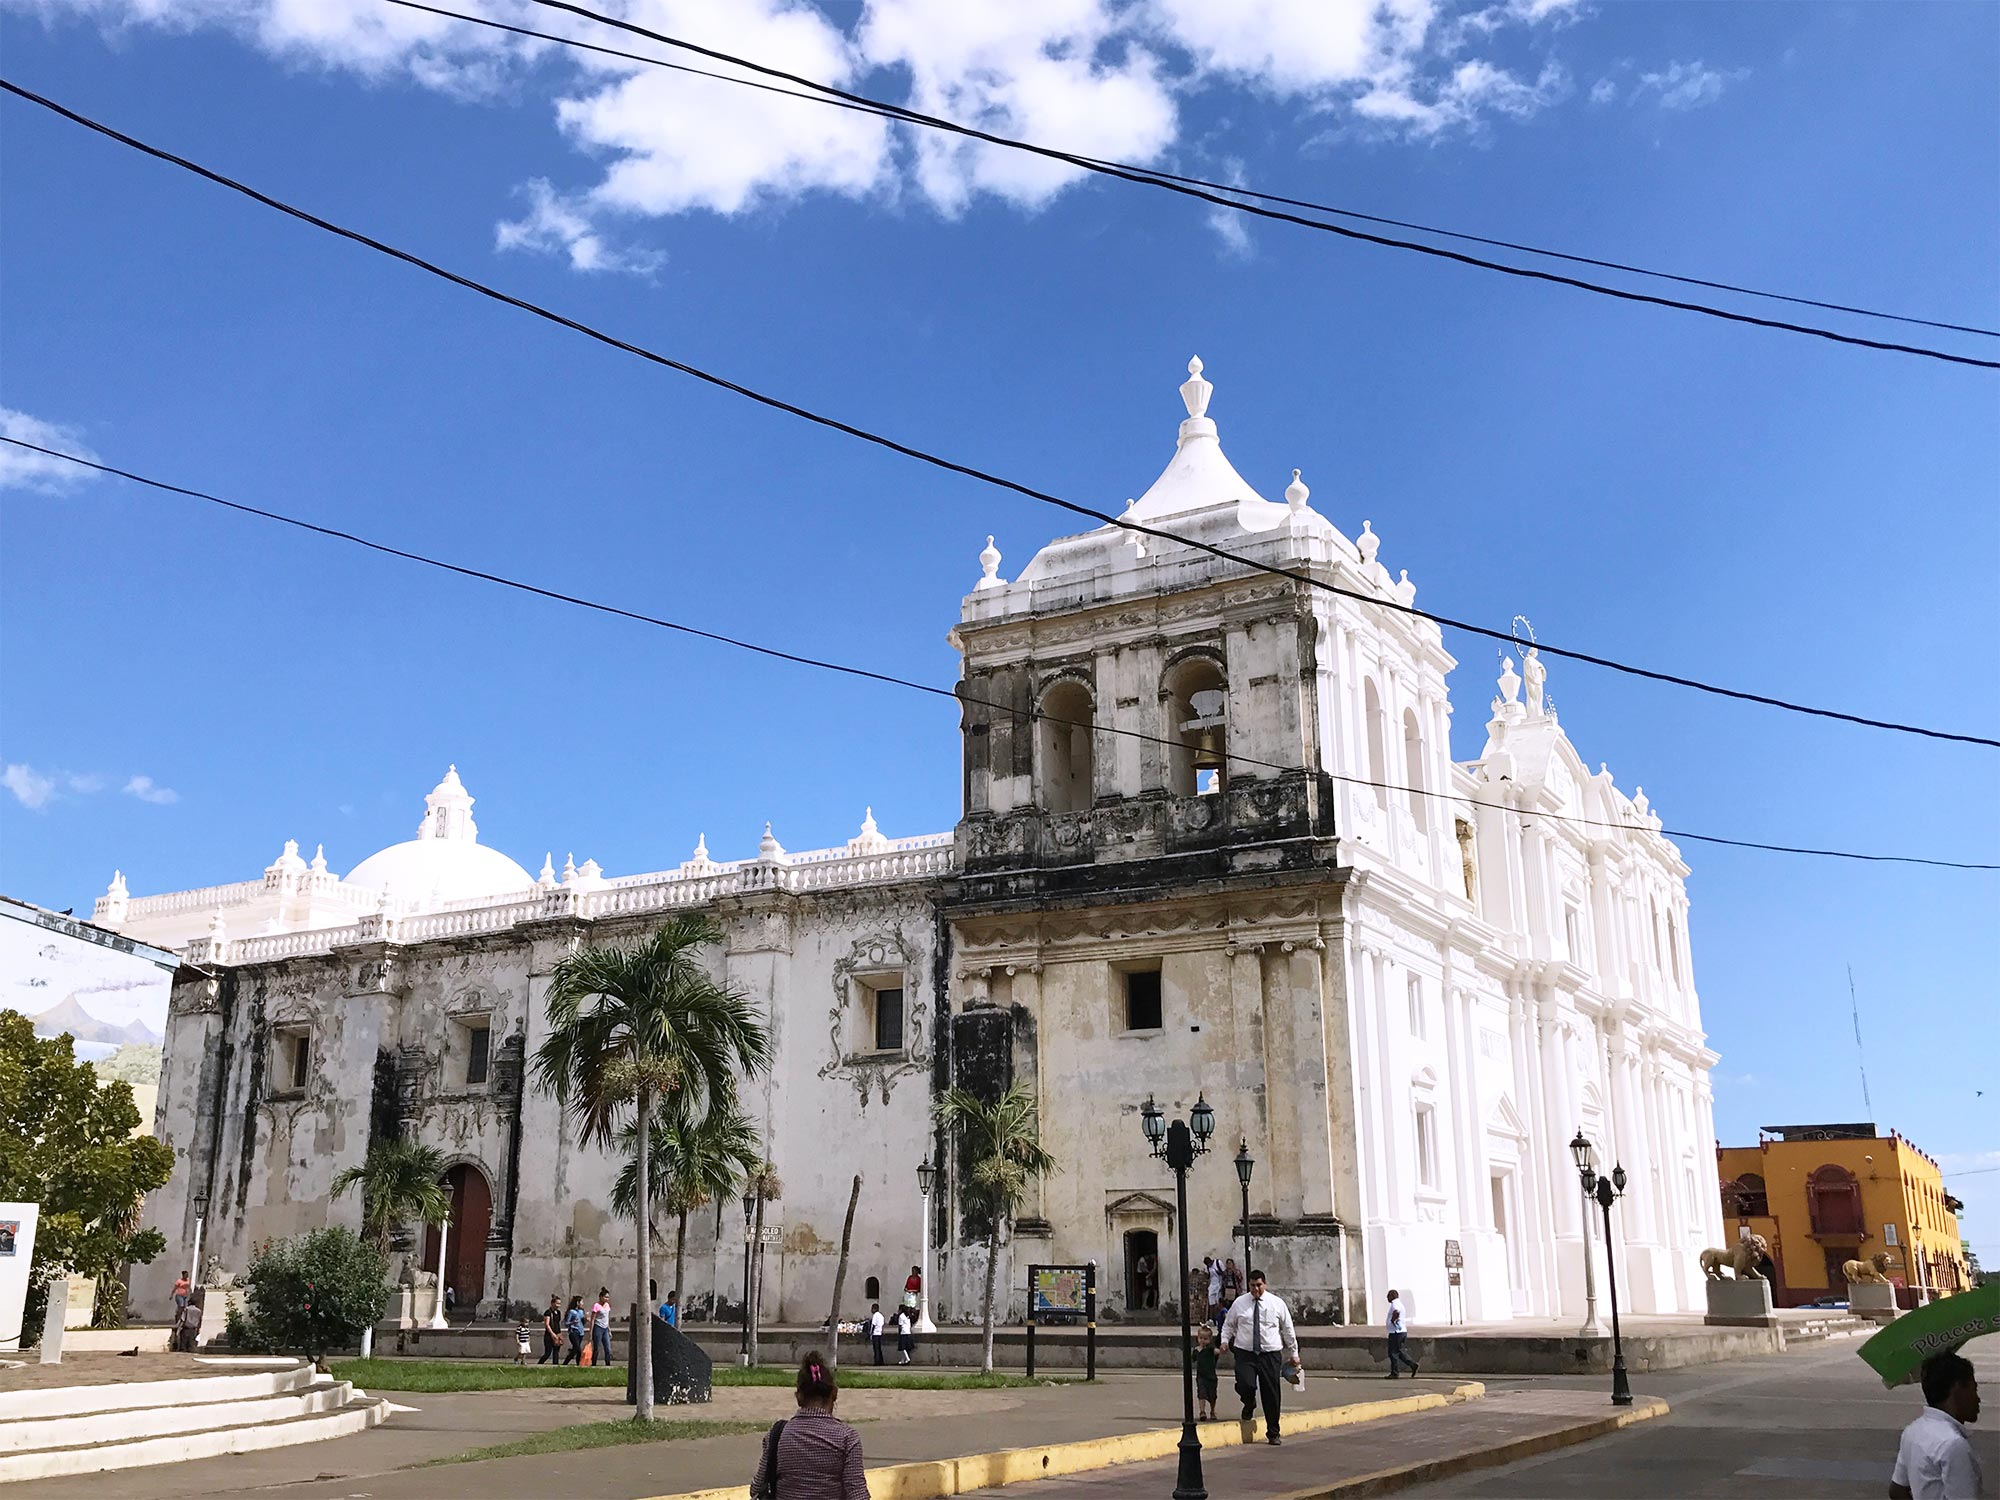 Leon Nicaragua cathedral